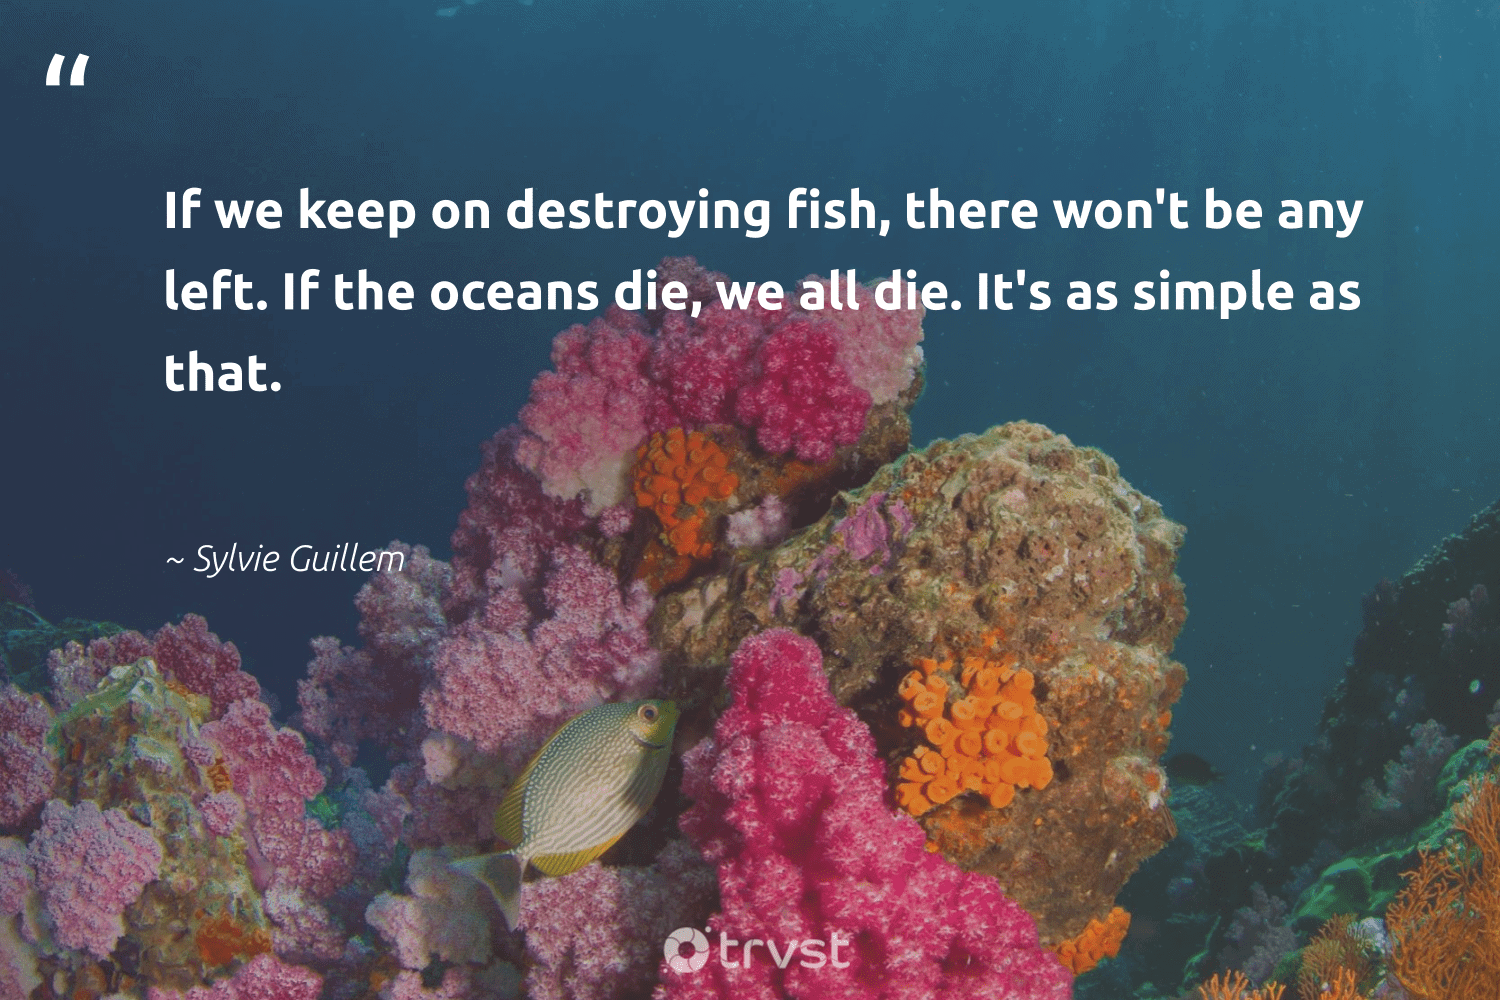 """""""If we keep on destroying fish, there won't be any left. If the oceans die, we all die. It's as simple as that.""""  - Sylvie Guillem #trvst #quotes #fish #oceans #healthyocean #changetheworld #sealife #gogreen #sustainability #socialchange #oceanlove #dosomething"""